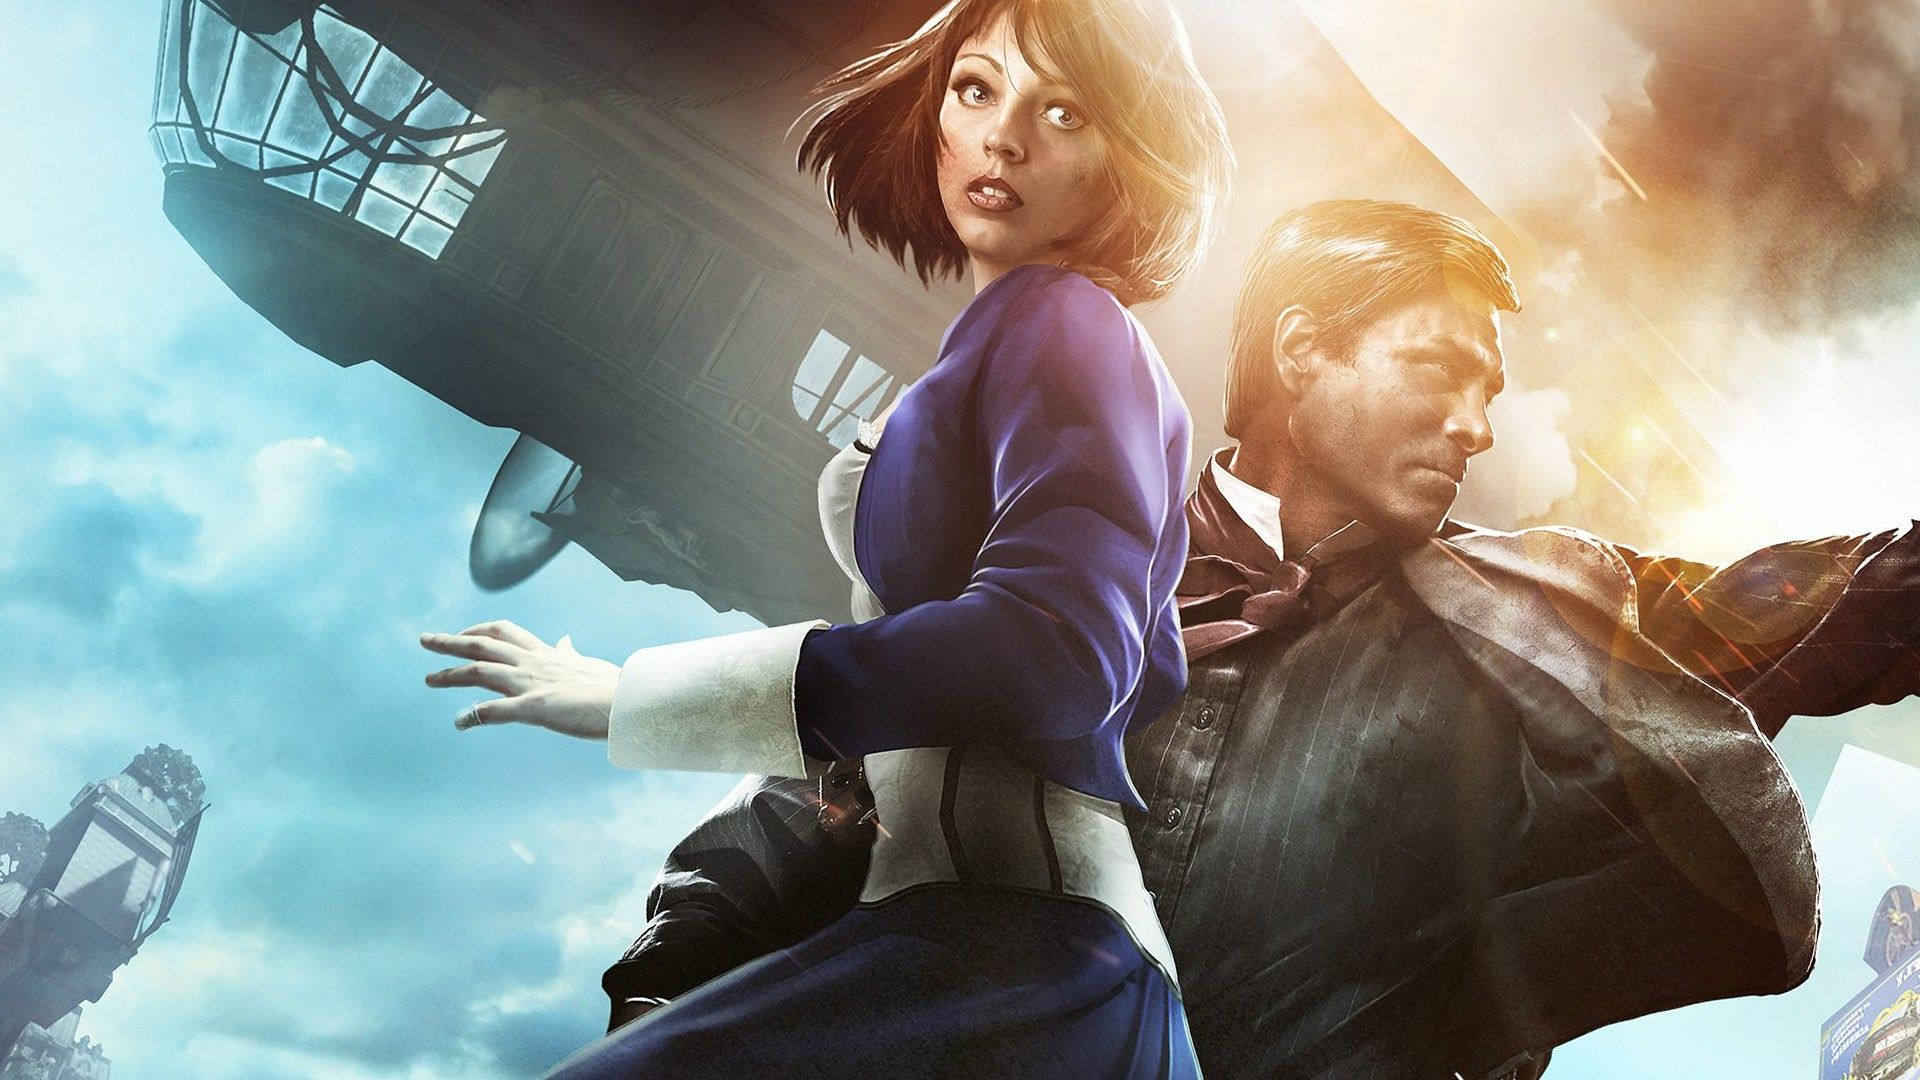 Pin by AliceEve313 . on Industrial Revolution | Bioshock infinite, Bioshock, Bioshock infinite elizabeth